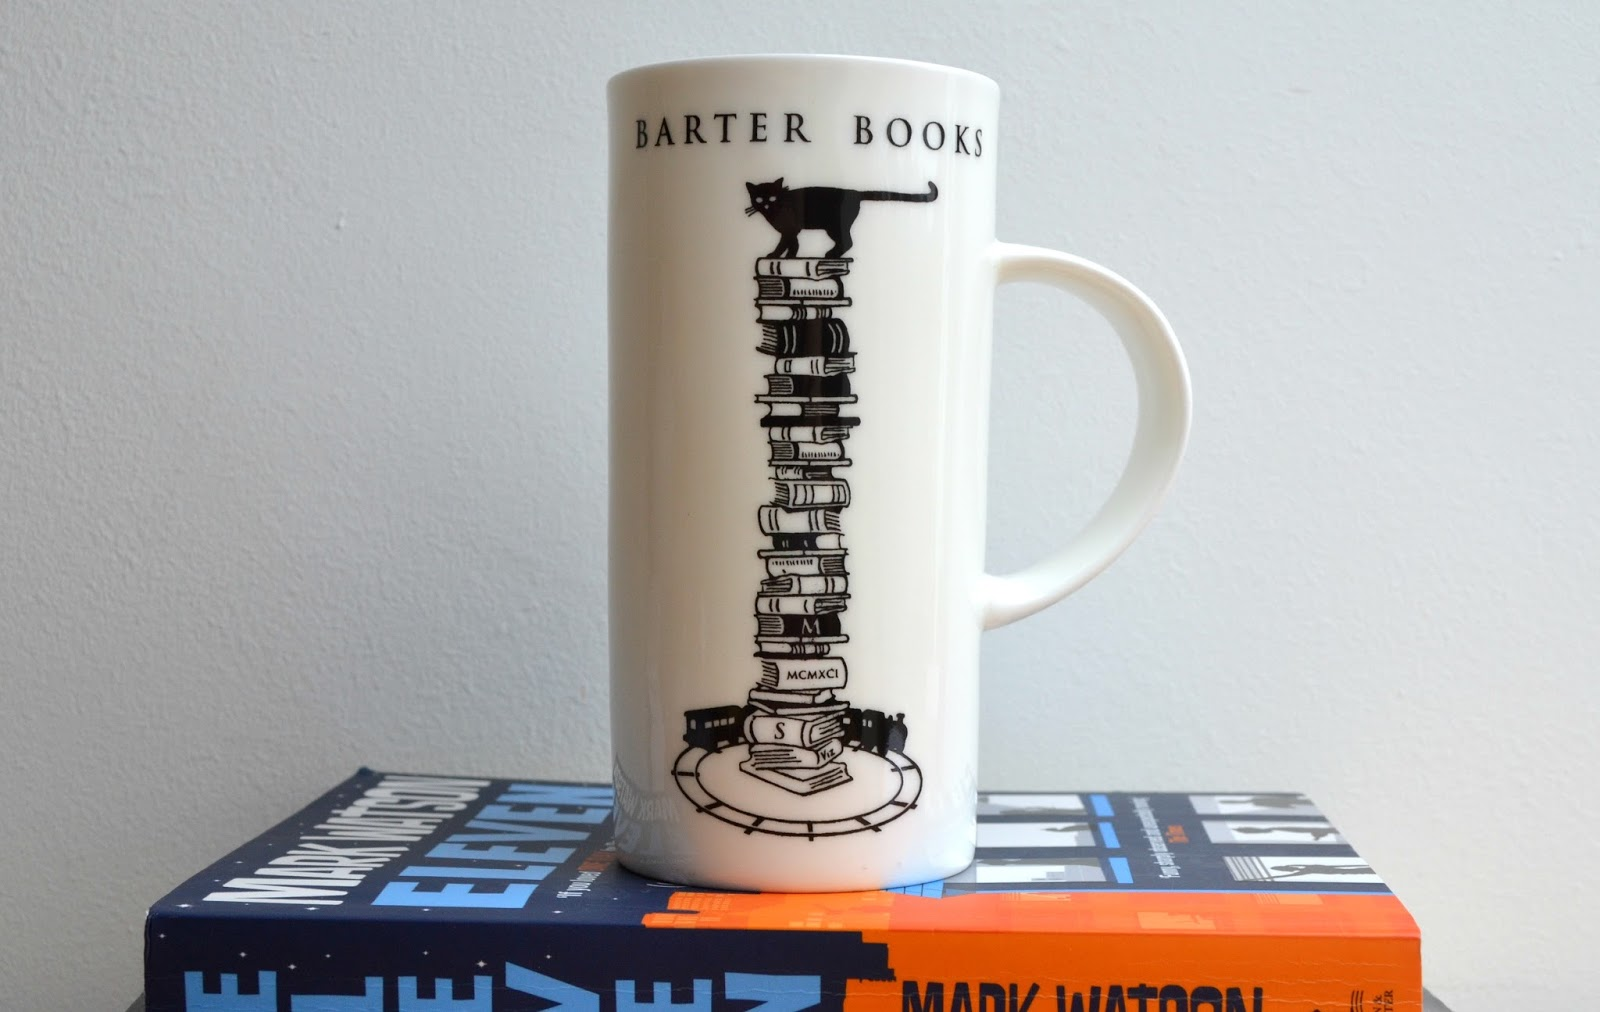 Barter Books mug with a stack of books, a cat and a train on it.